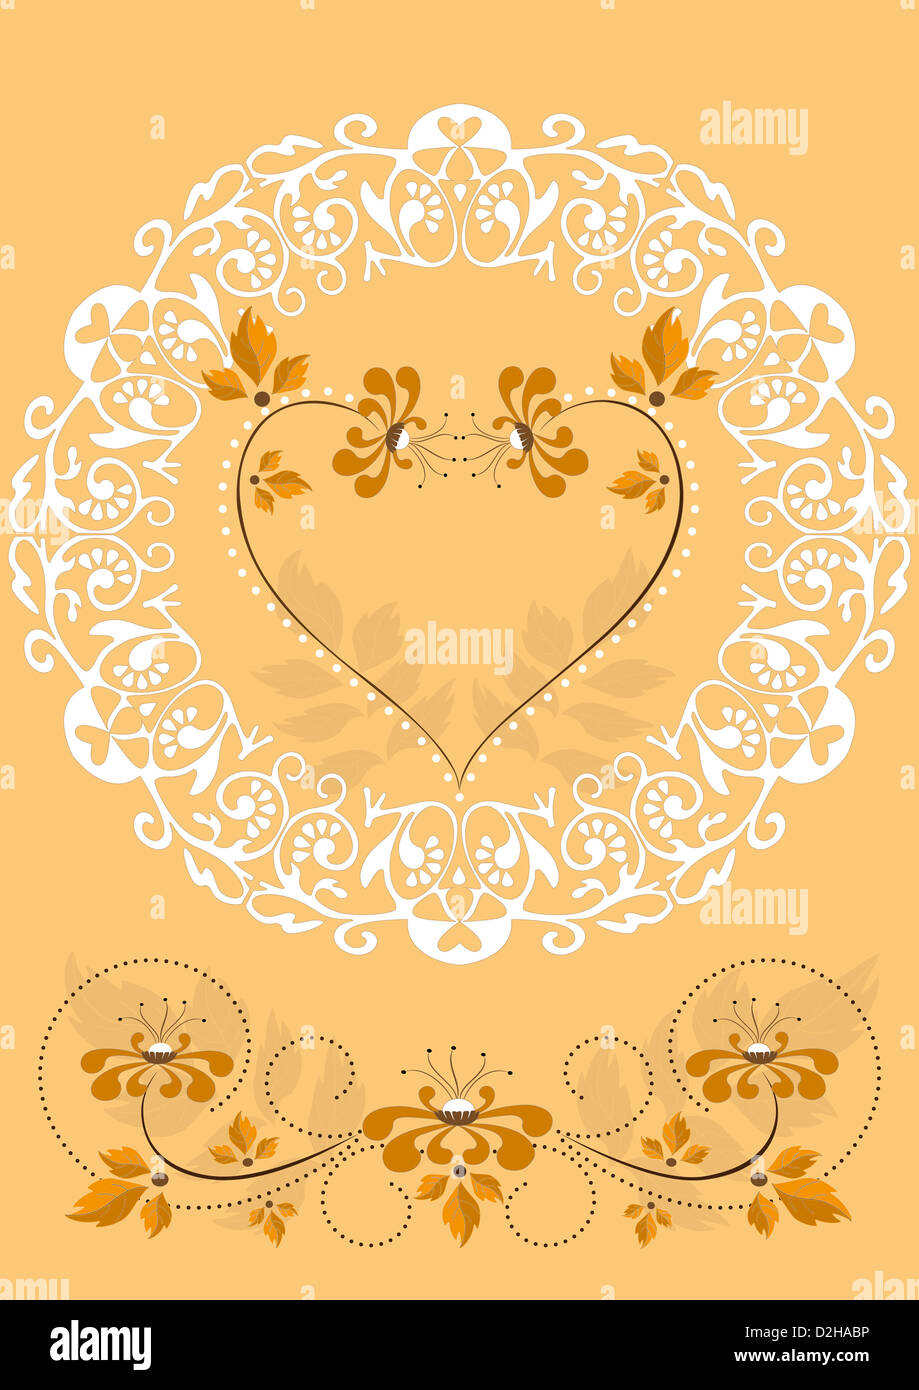 Openwork frame with orange flowers and hearts - Stock Image